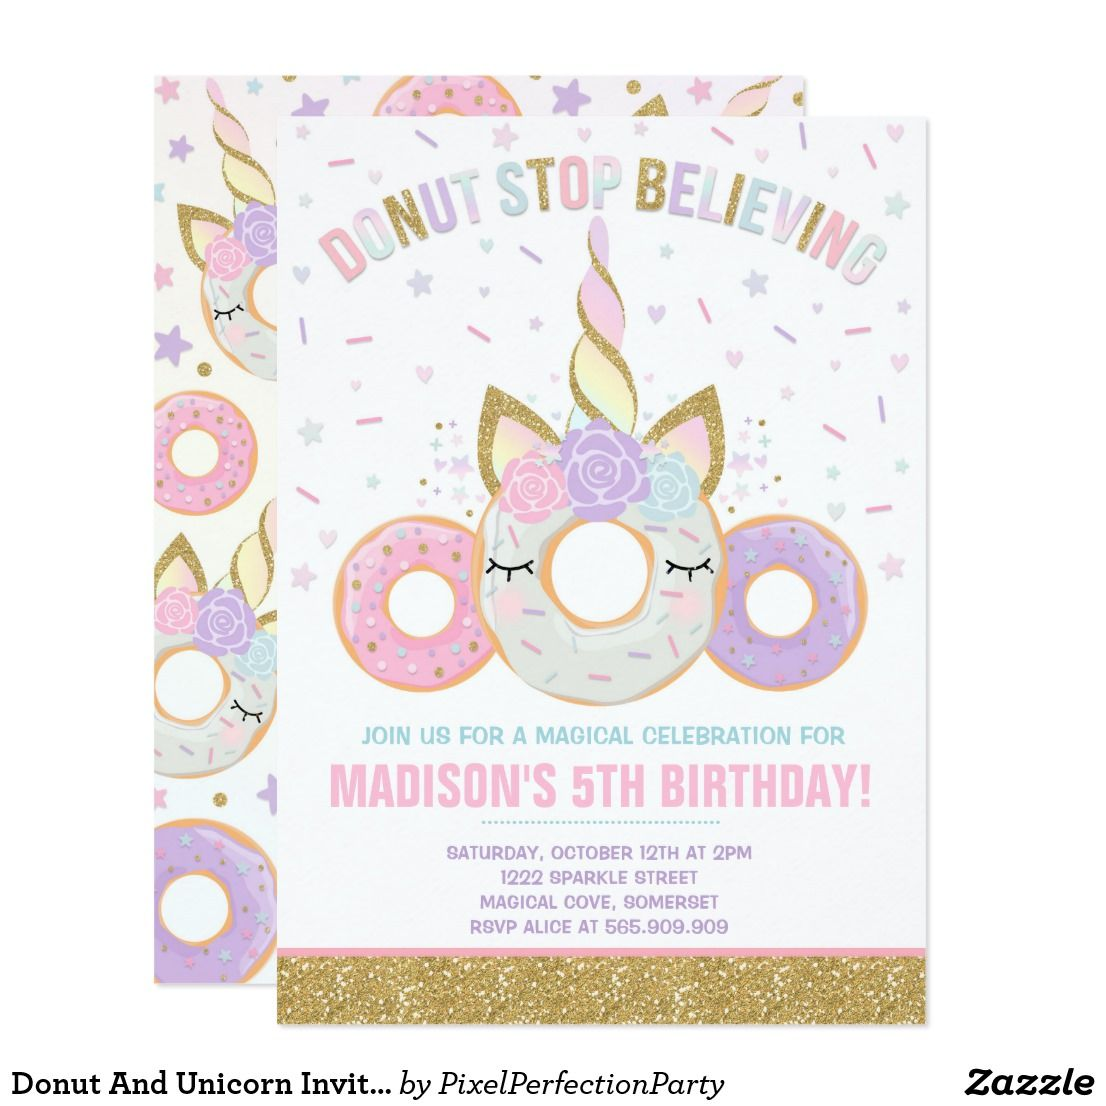 Donut And Unicorn Invitation Donut Stop Believing | Party ...